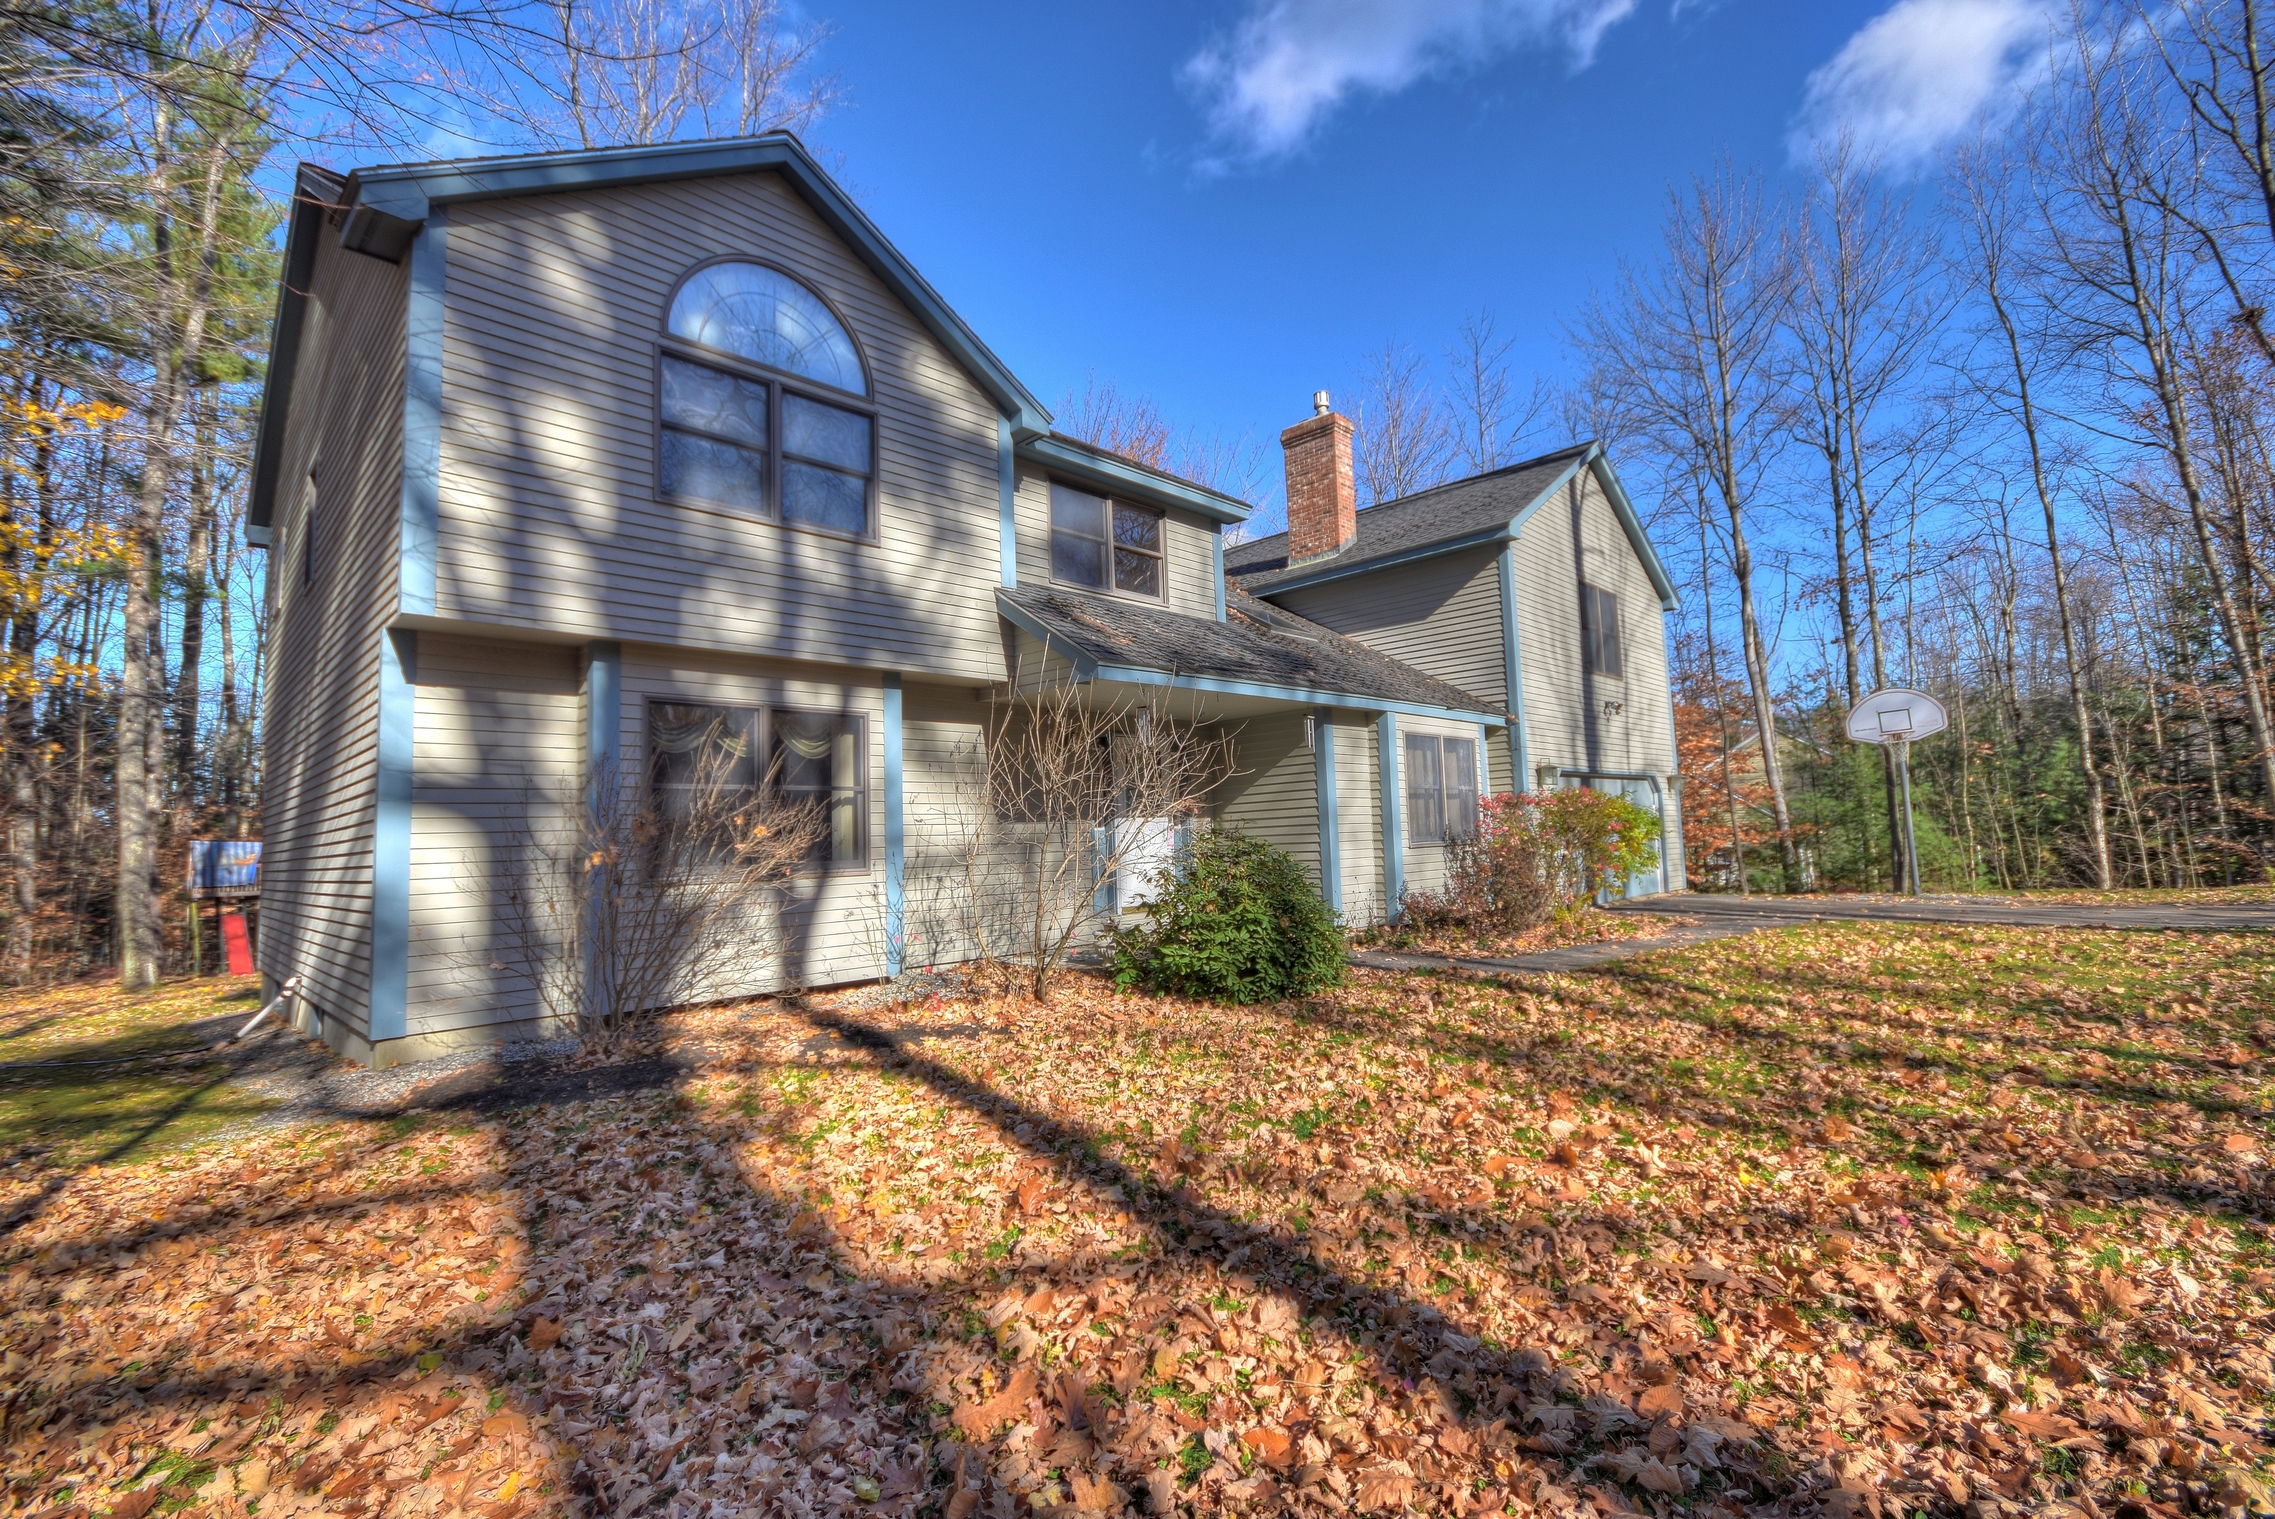 Single Family Home for Sale at 33 Robertson, Gilford 33 Robertson Dr Gilford, New Hampshire, 03249 United States